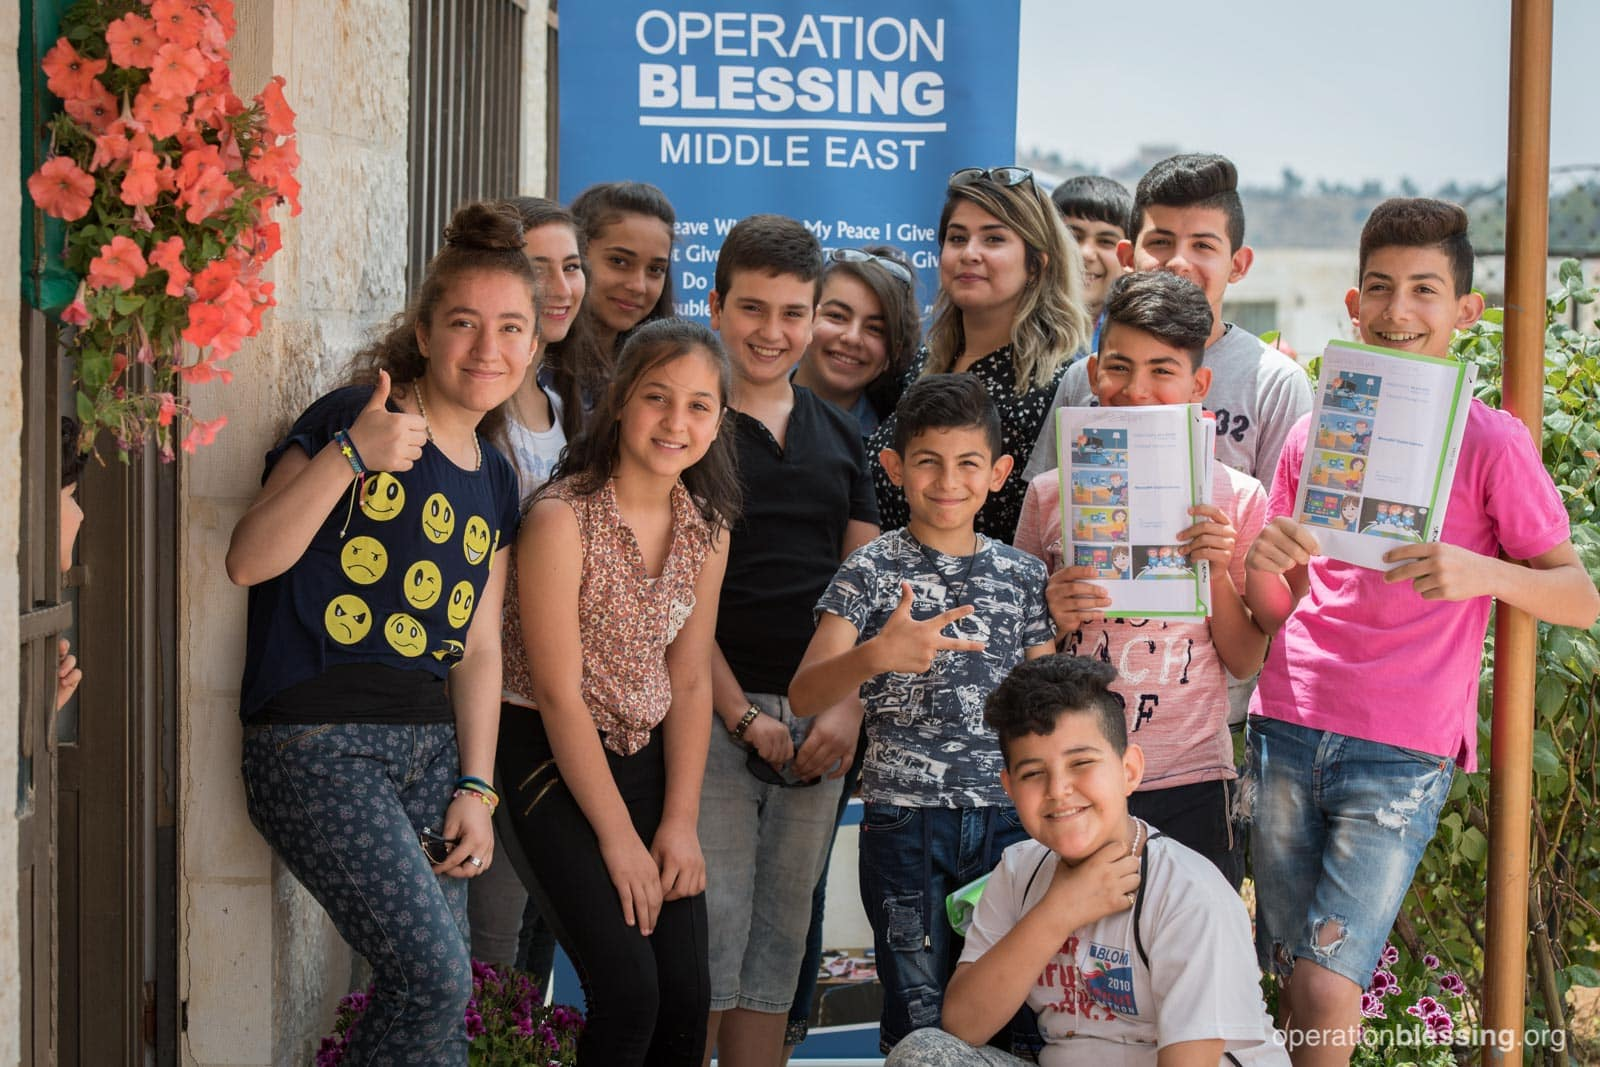 Nataly poses with her friends at the Operation Blessing training center.